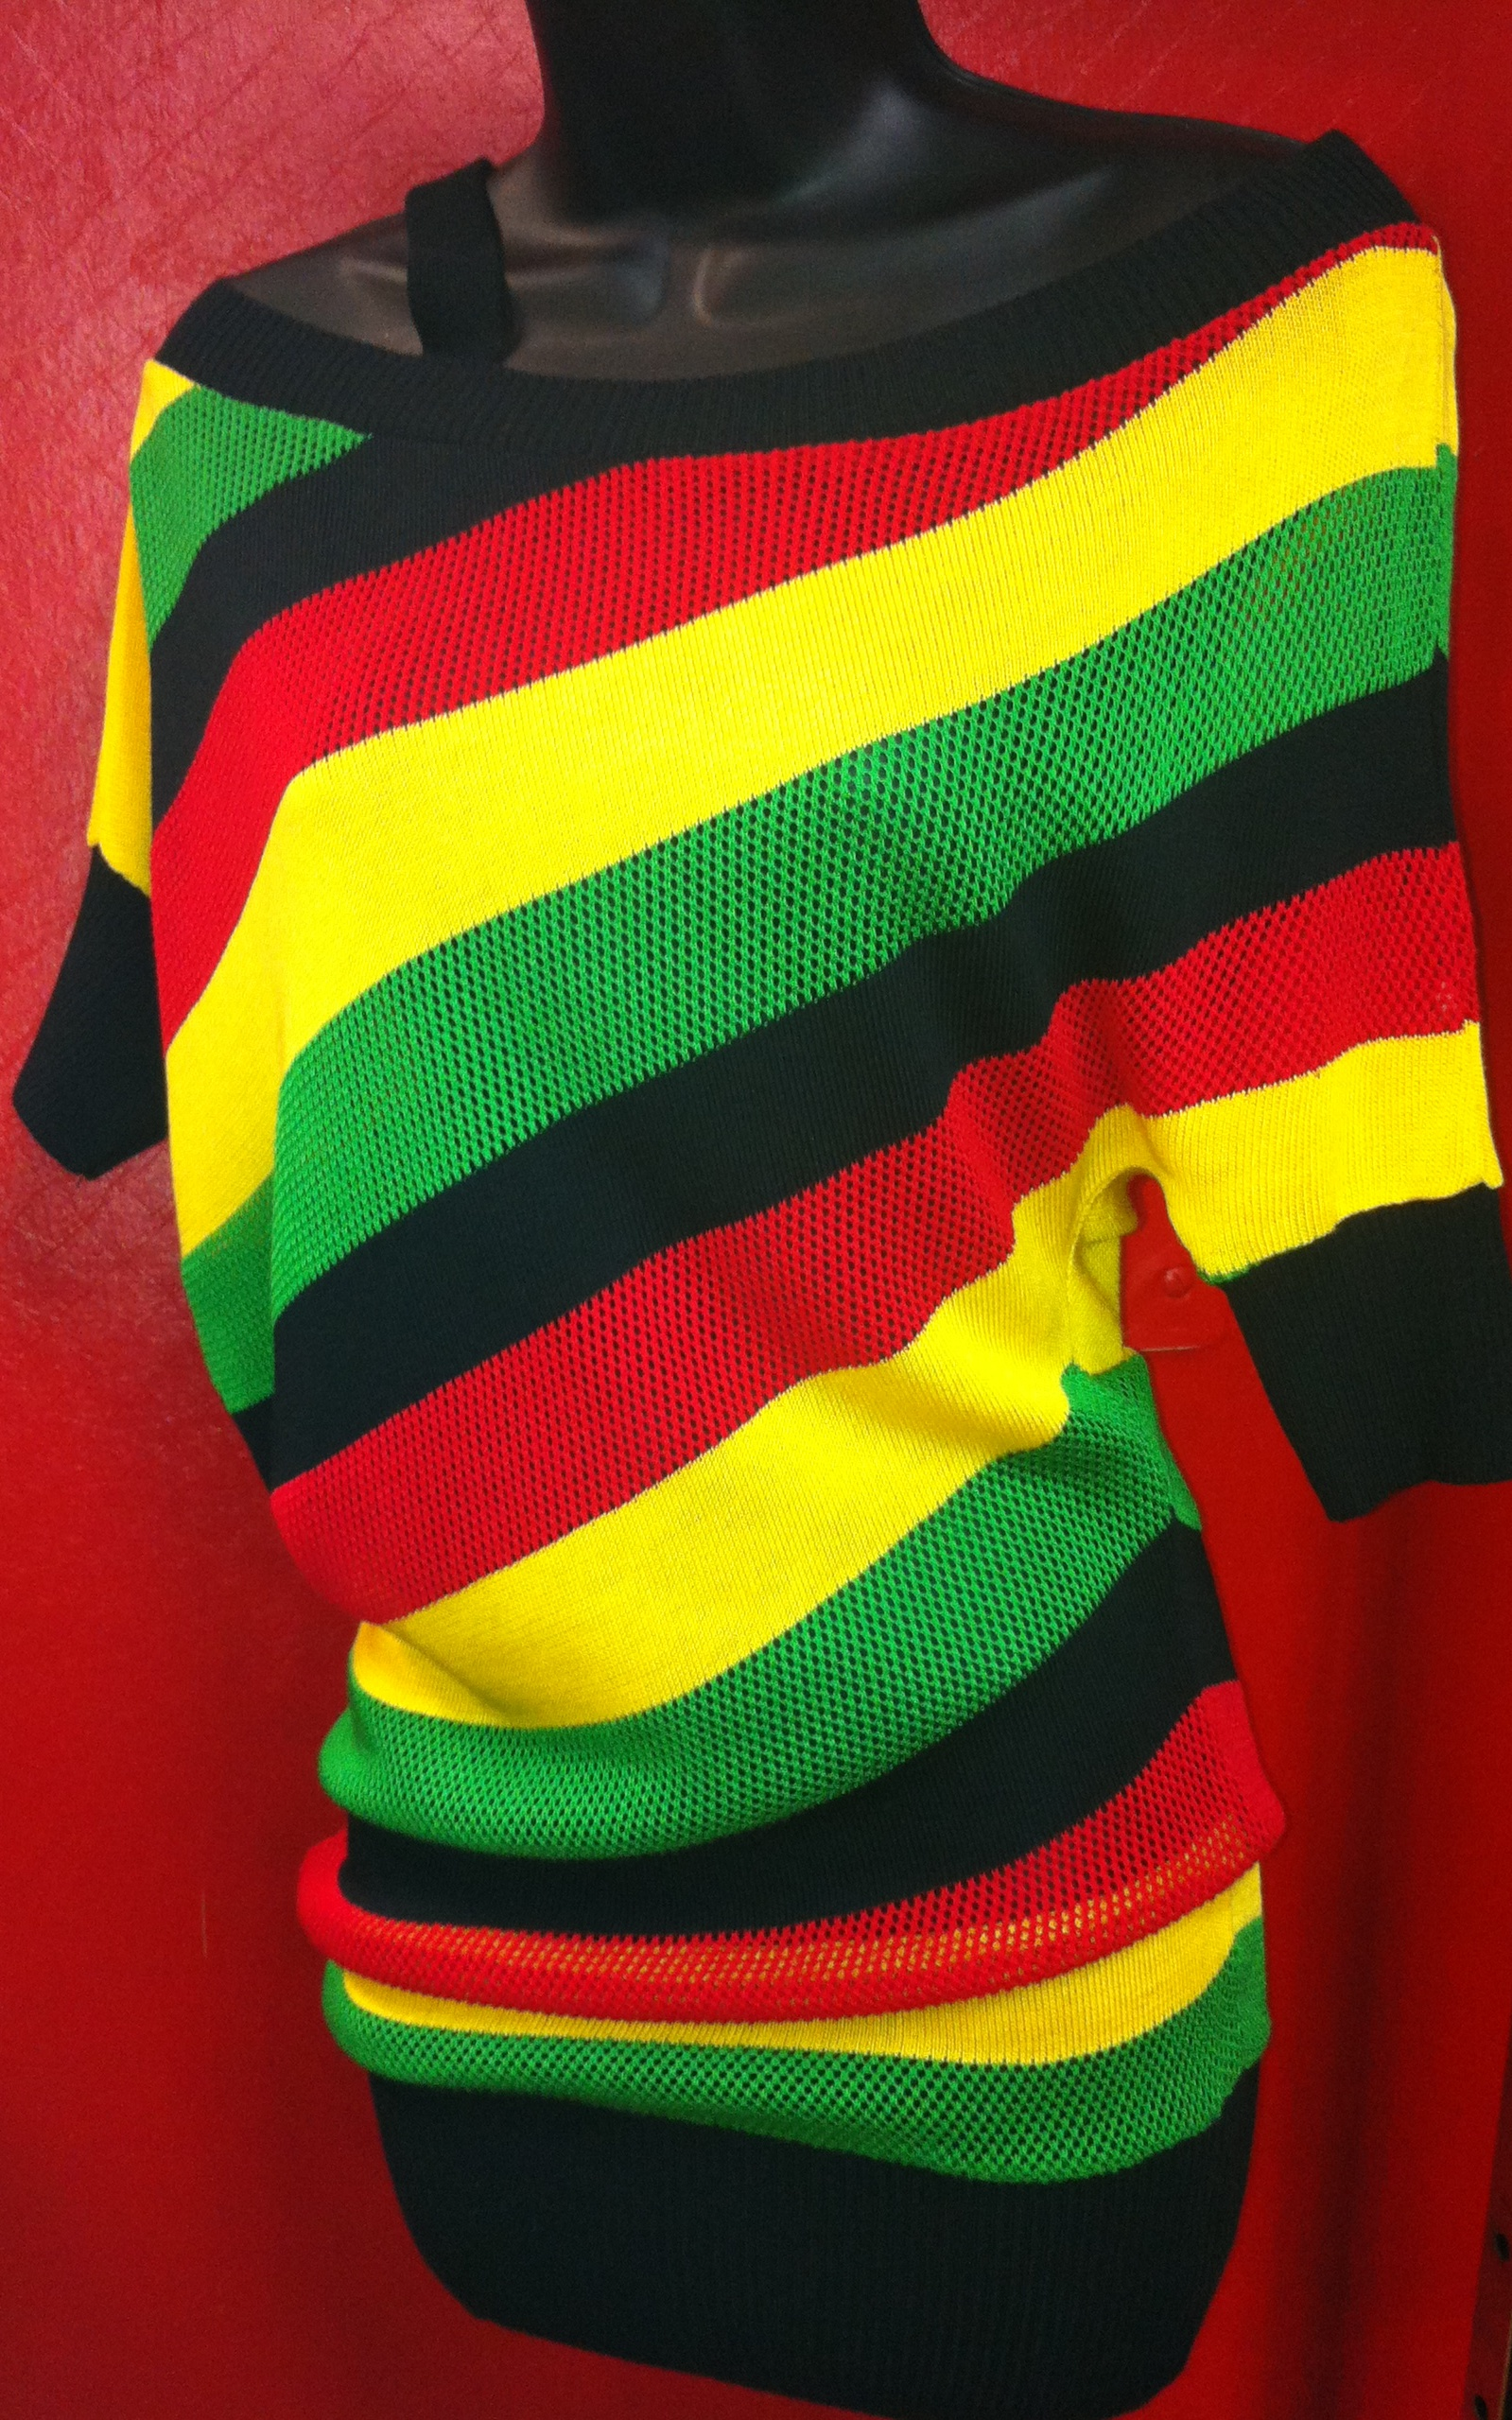 Rasta Mesh Top/Dress (Small only)